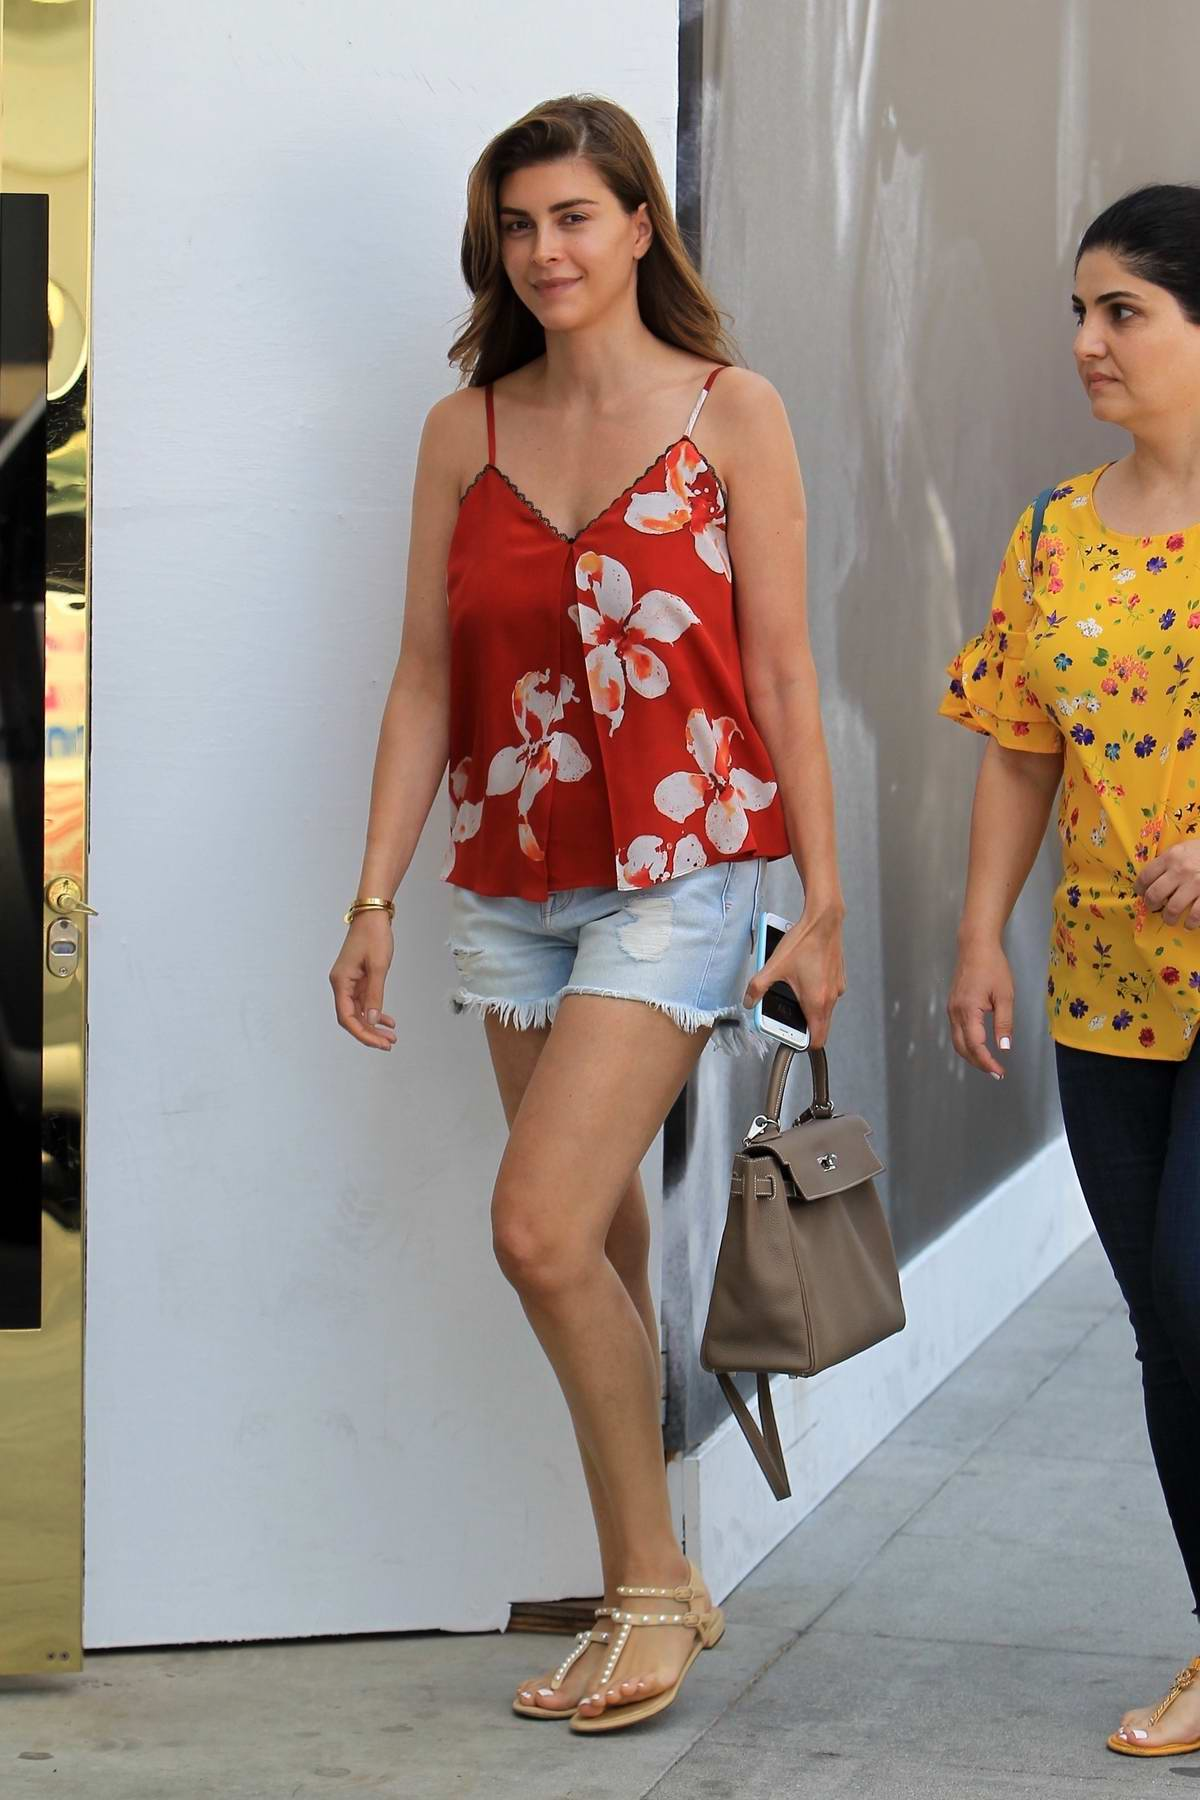 Shiva Safai seen wearing a red floral top with denim shorts while out in Beverly Hills, Los Angeles